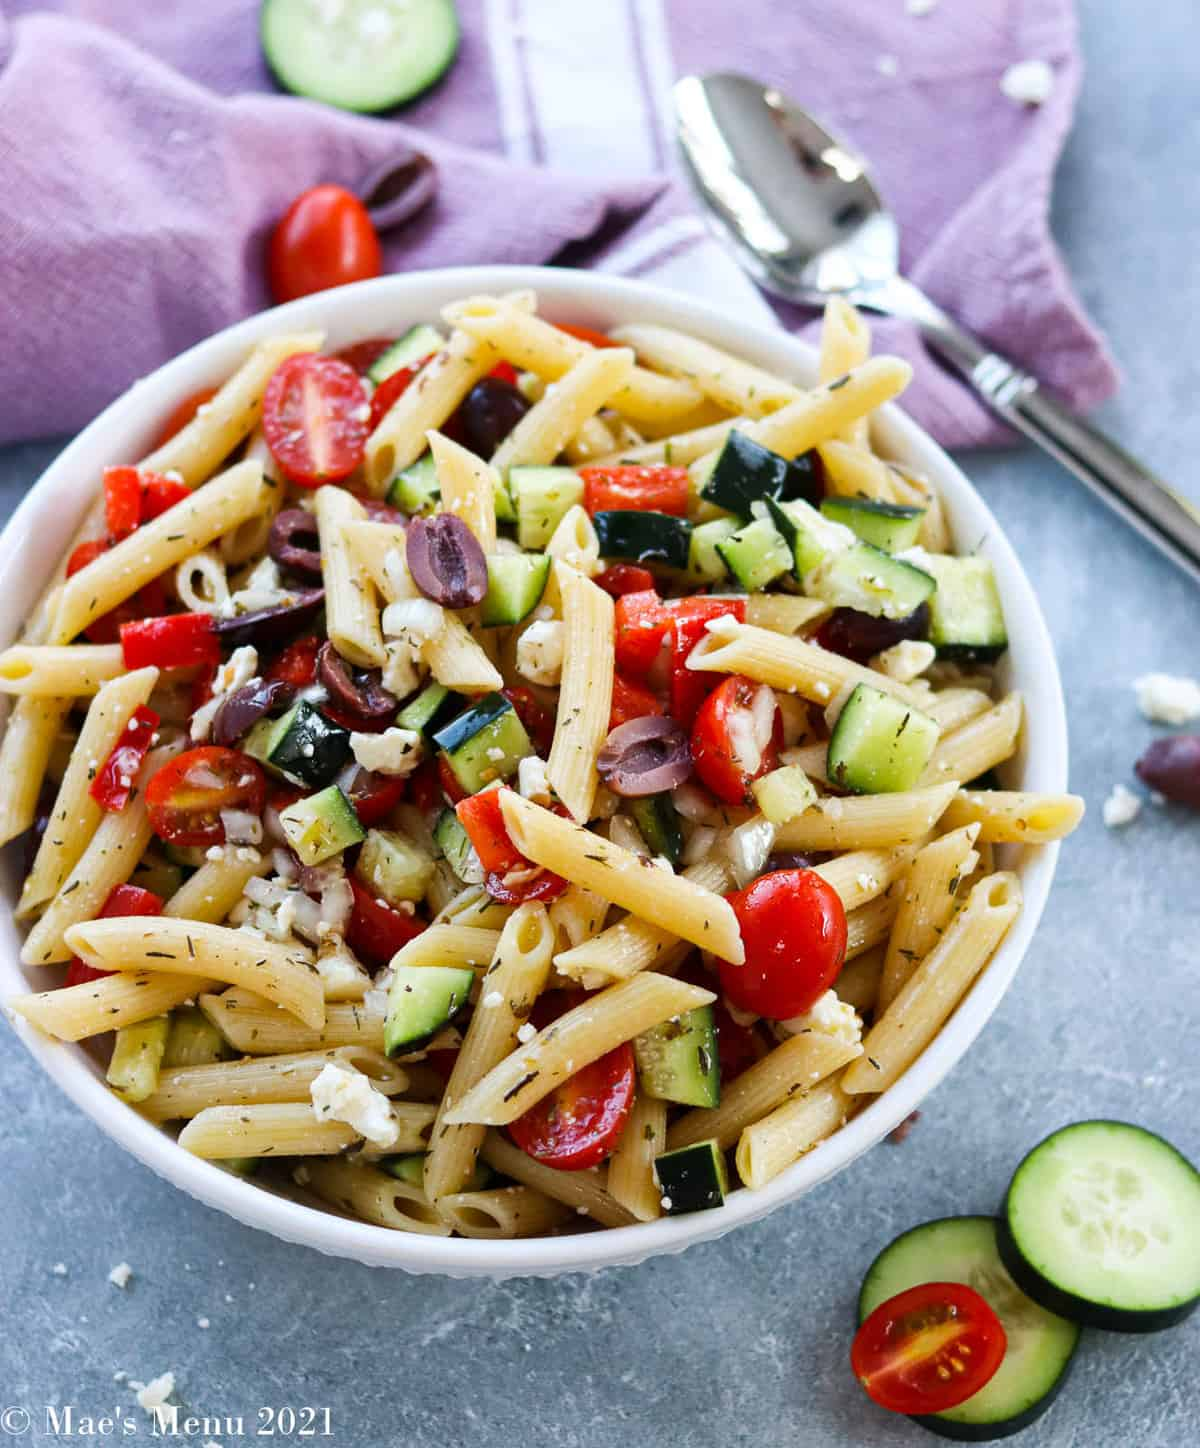 An overhead shot of a bowl of Greek Penne pasta salad